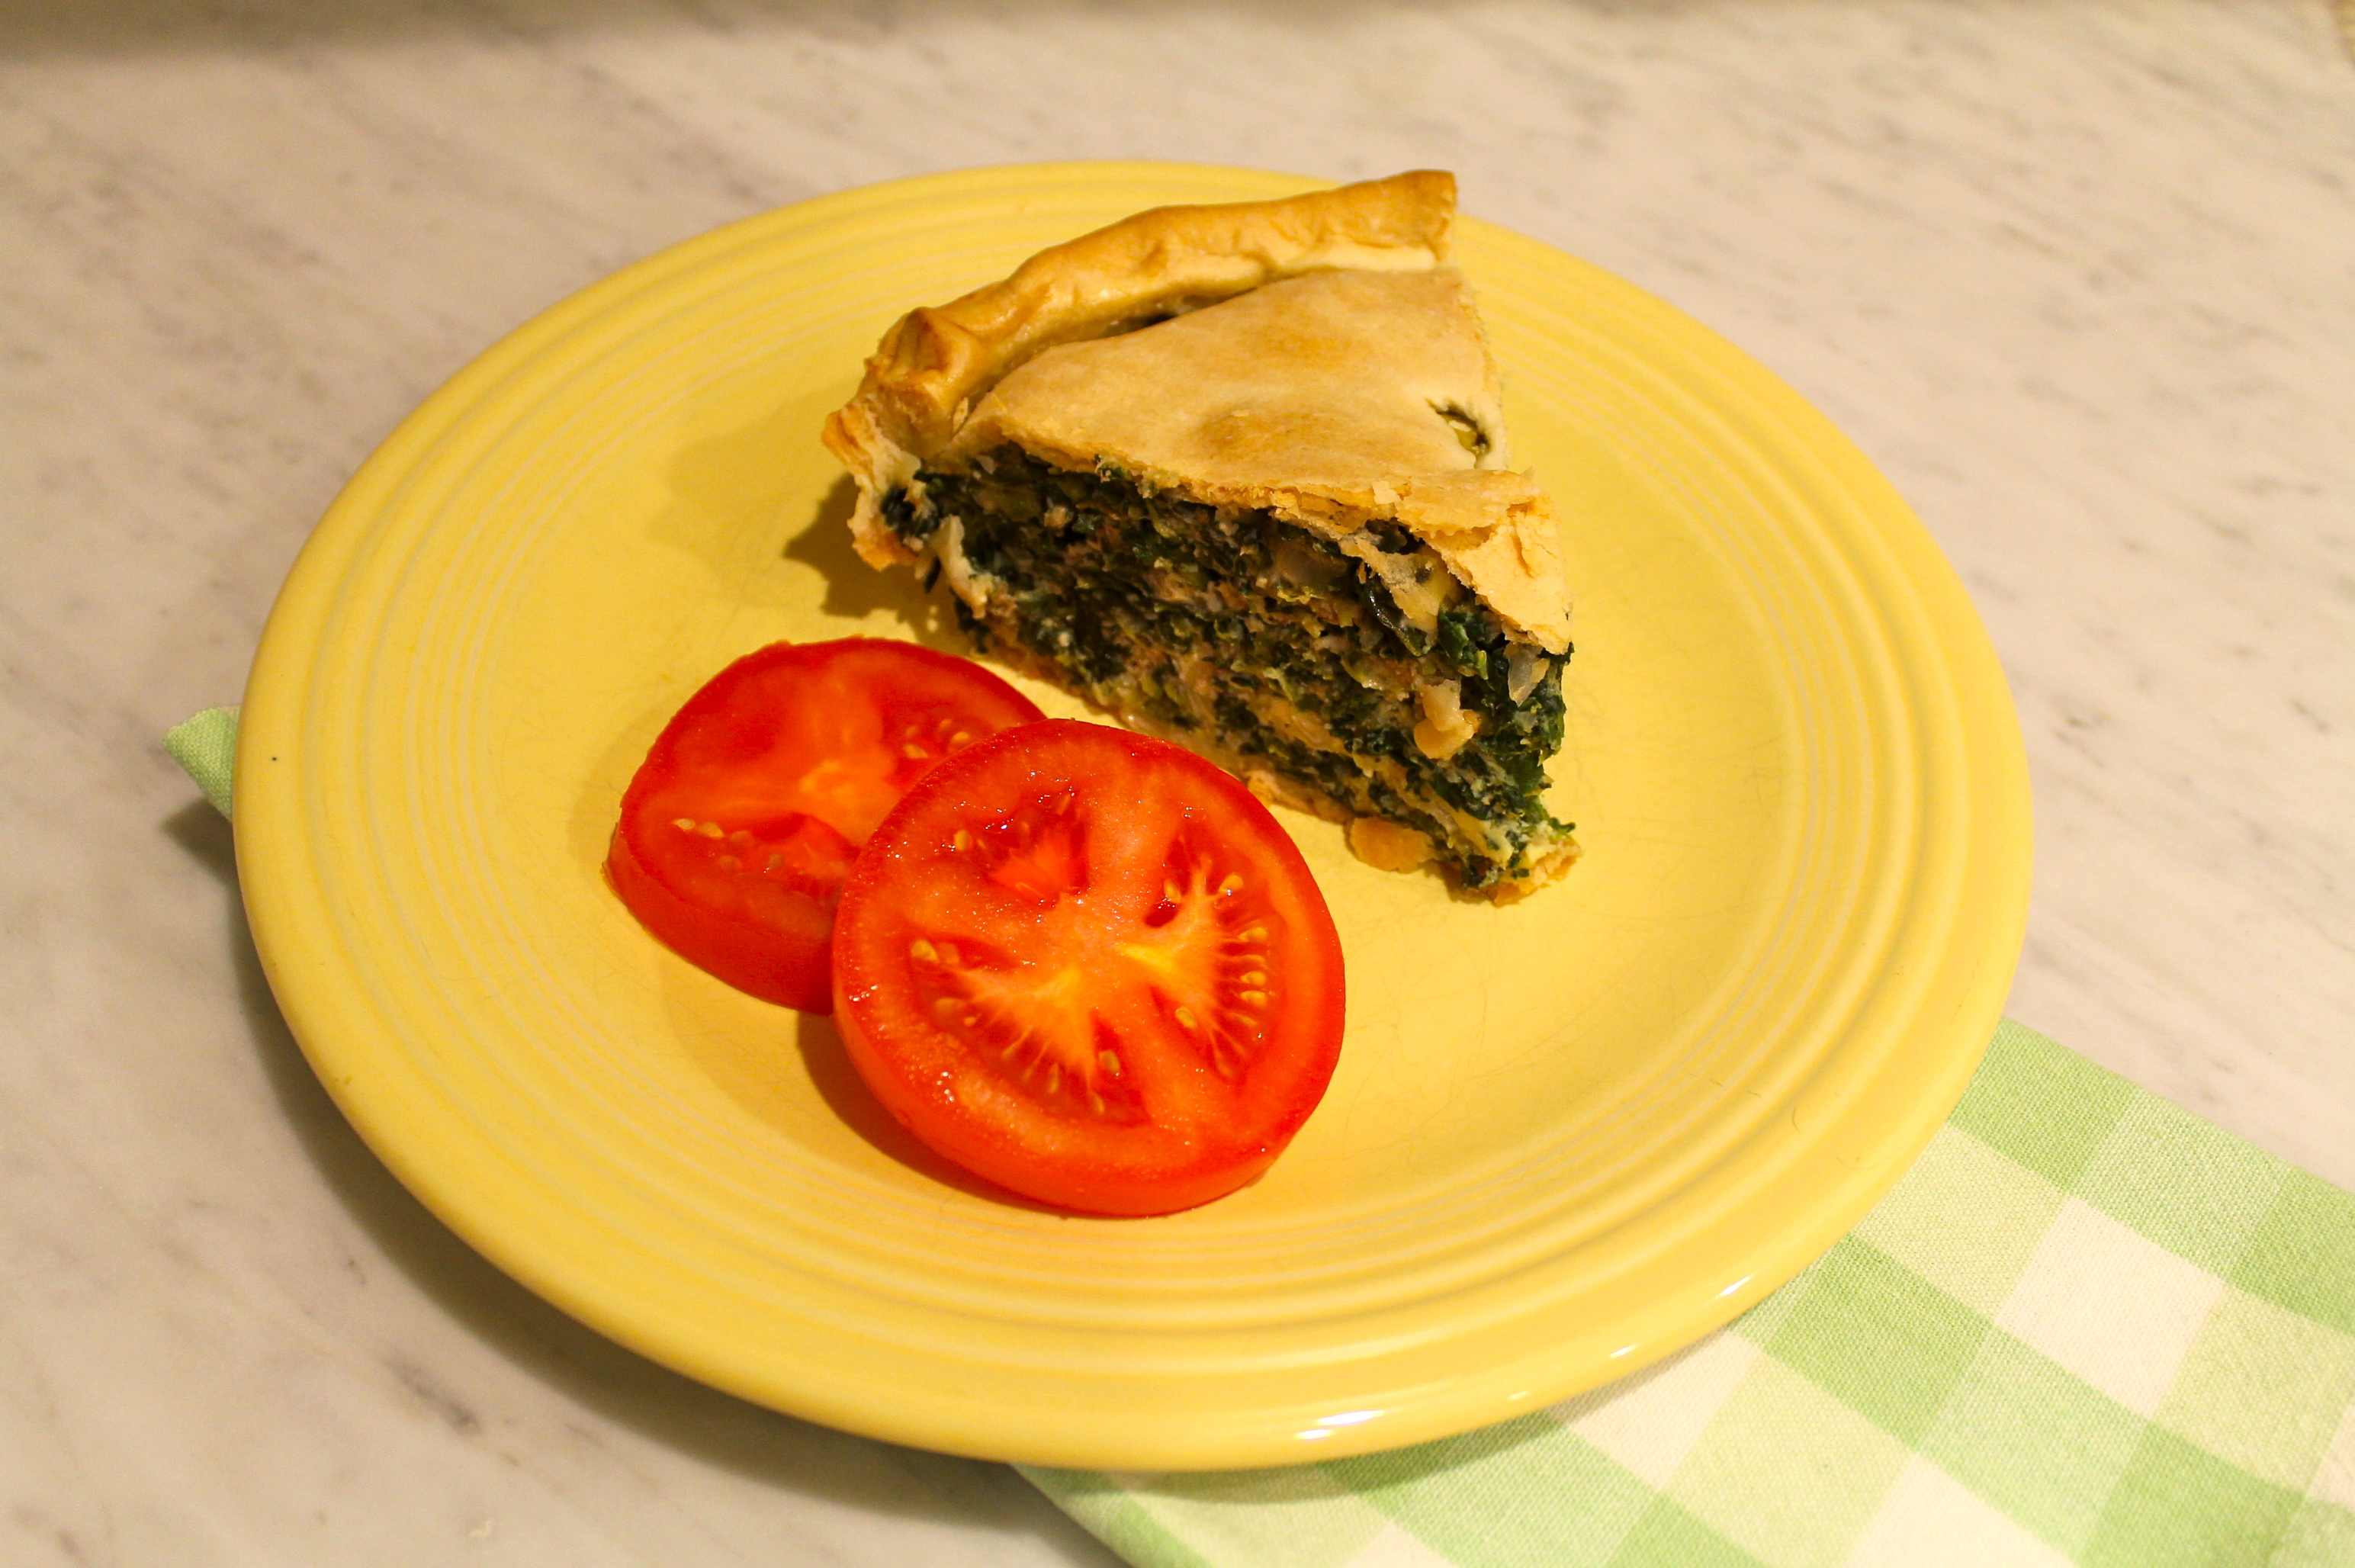 IMG 1868 - Spinach Pie for Meatless Friday